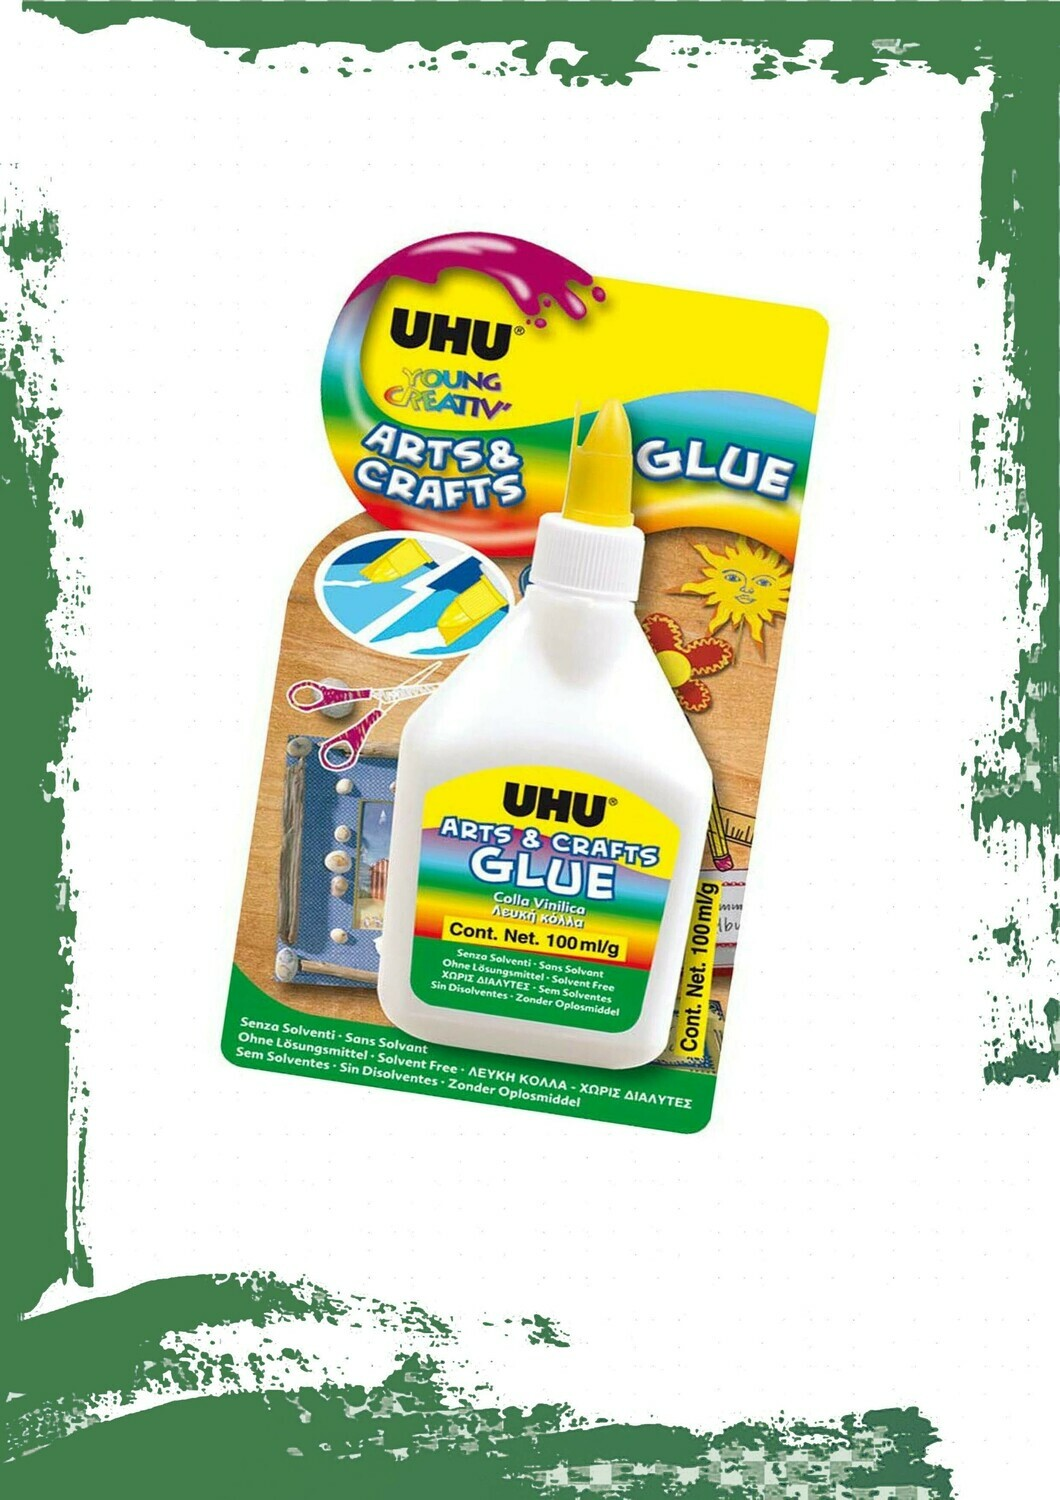 UHU White Glue - غراء أبيض أوهو